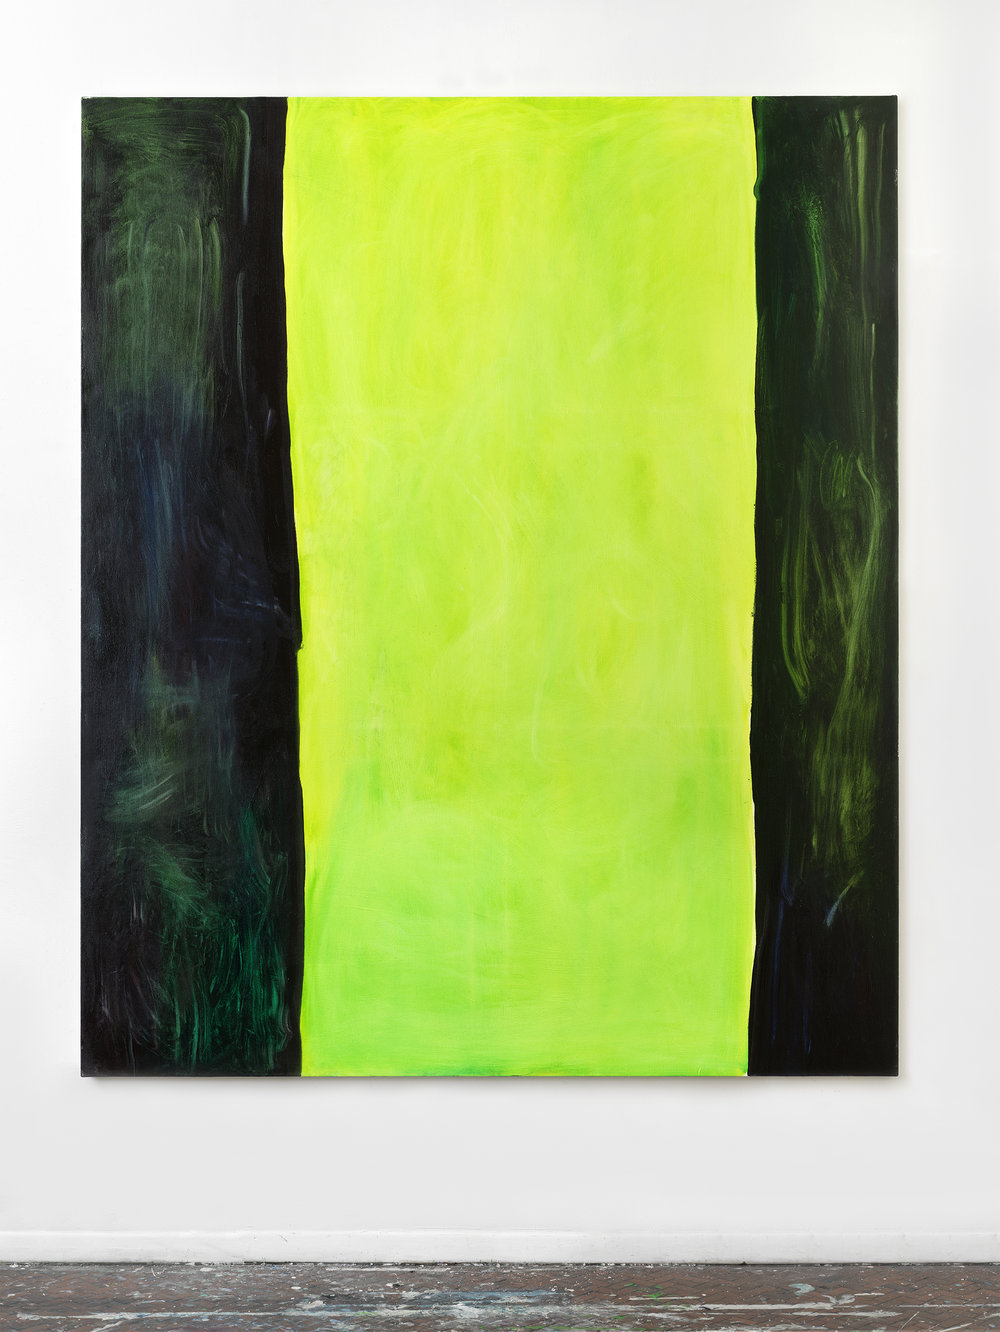 Jinx , 2018 73 x 61 inches, Oil on canvas